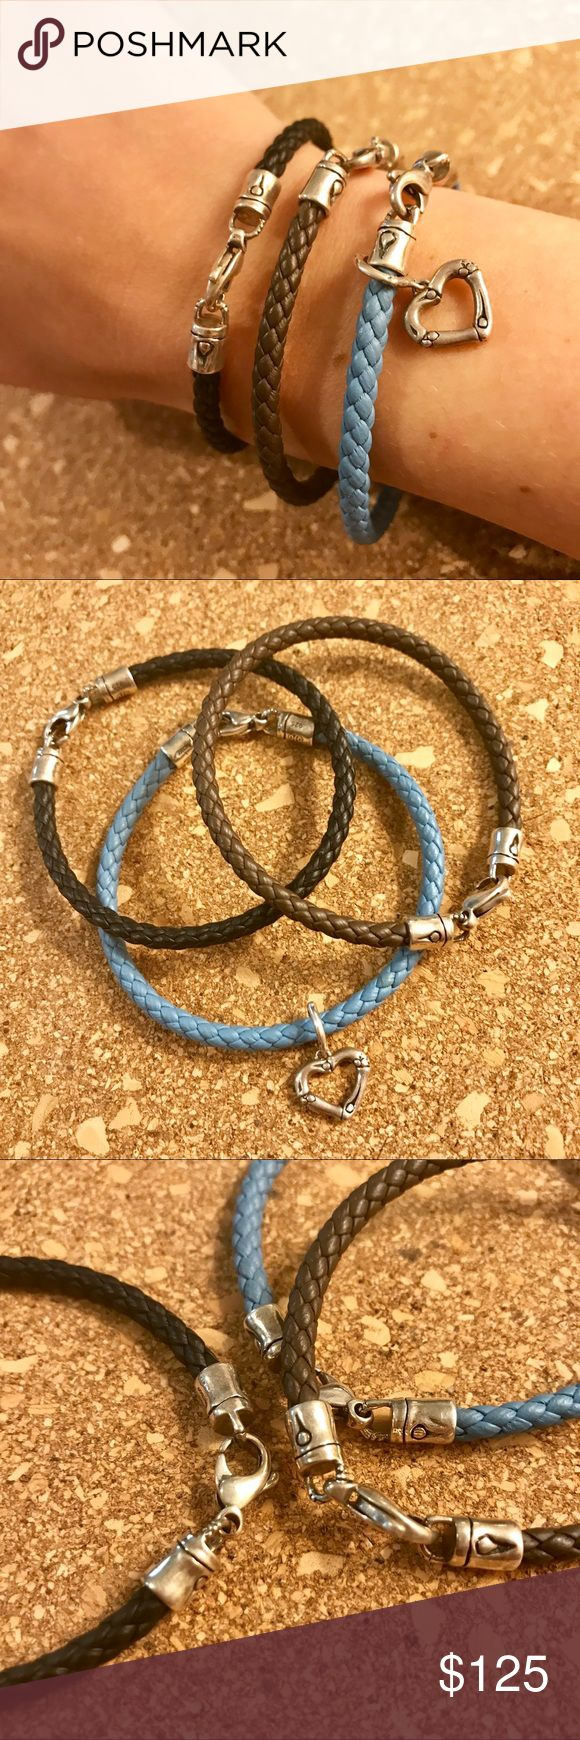 John Hardy Set of of 3 Leather Bracelets w/ Charm Brand new, never worn set of 3 woven leather bracelets with optional/removable heart charm. Bamboo collection. Each bracelet is about 7.25' around. No box or Dust Bag. John Hardy Jewelry Bracelets